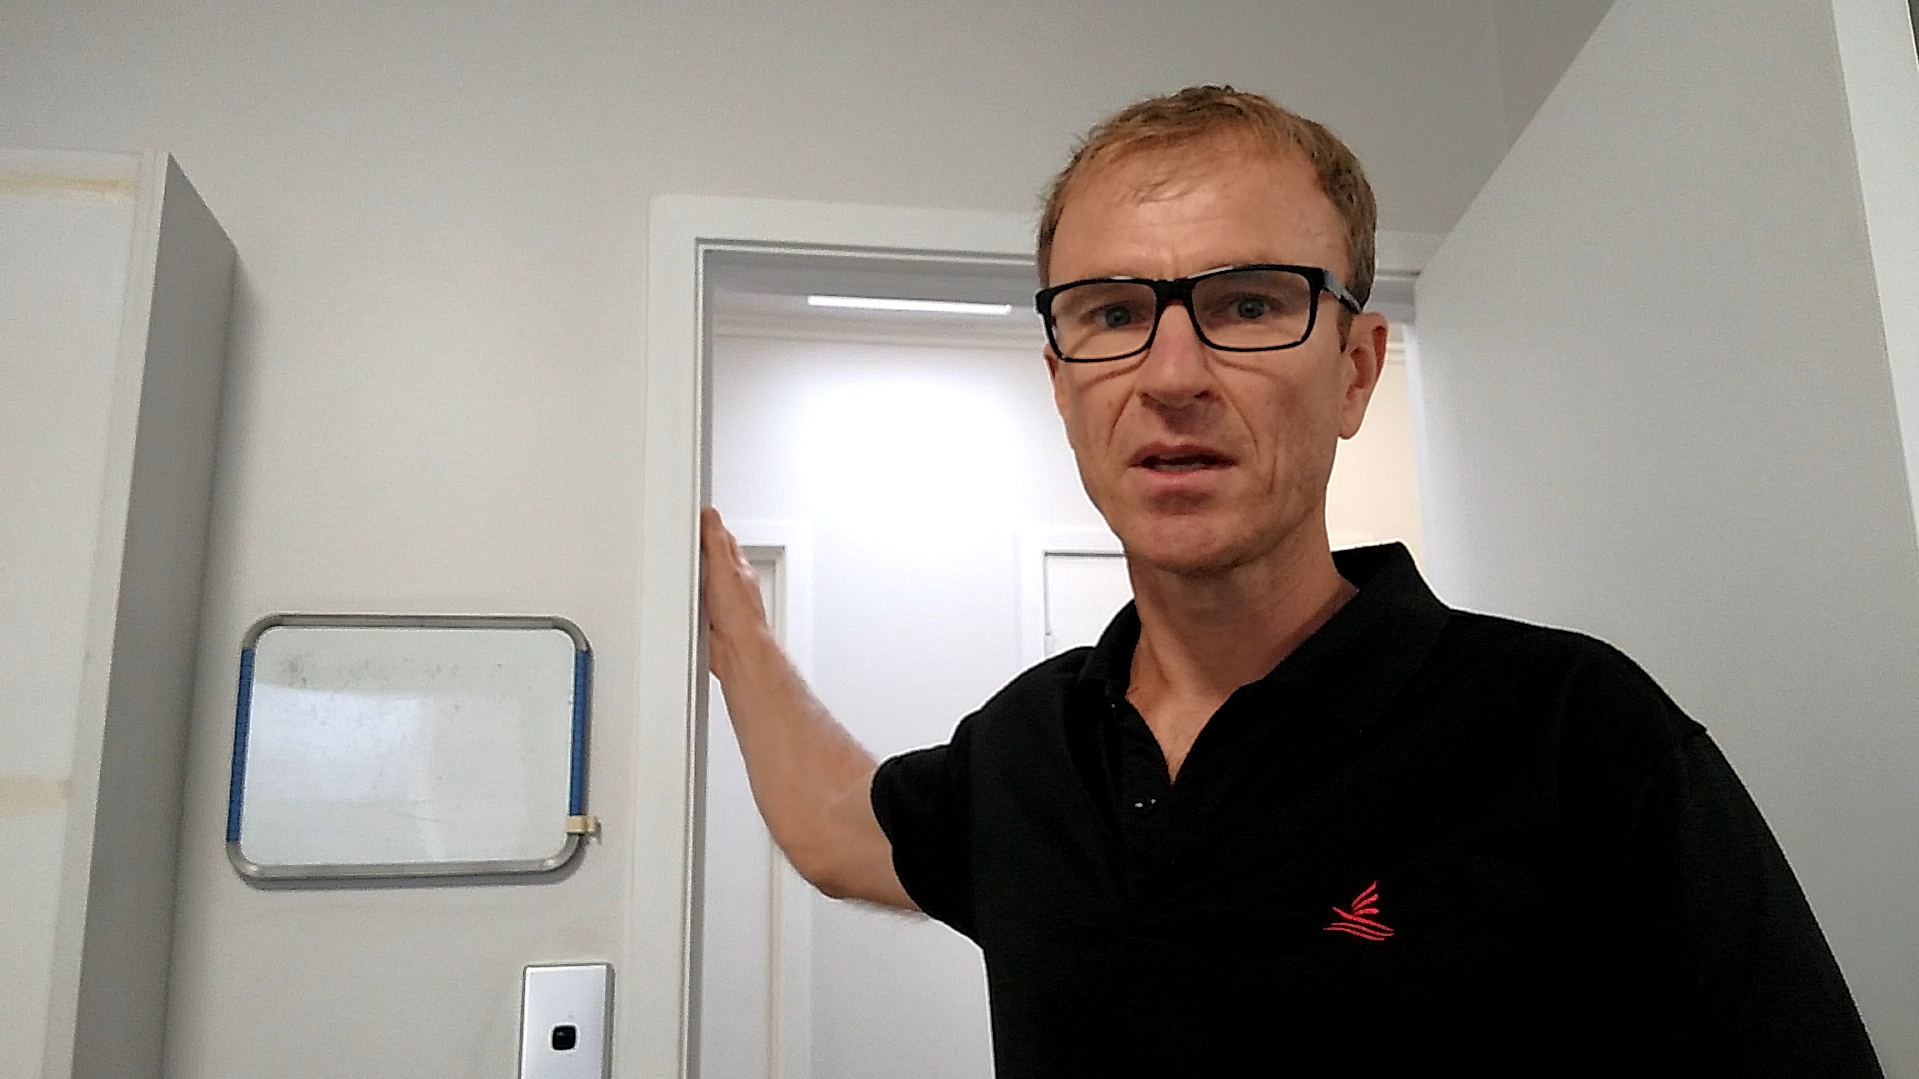 Norwest Chiro blog - Doorway Stretches How to Fix Rounded Shoulders